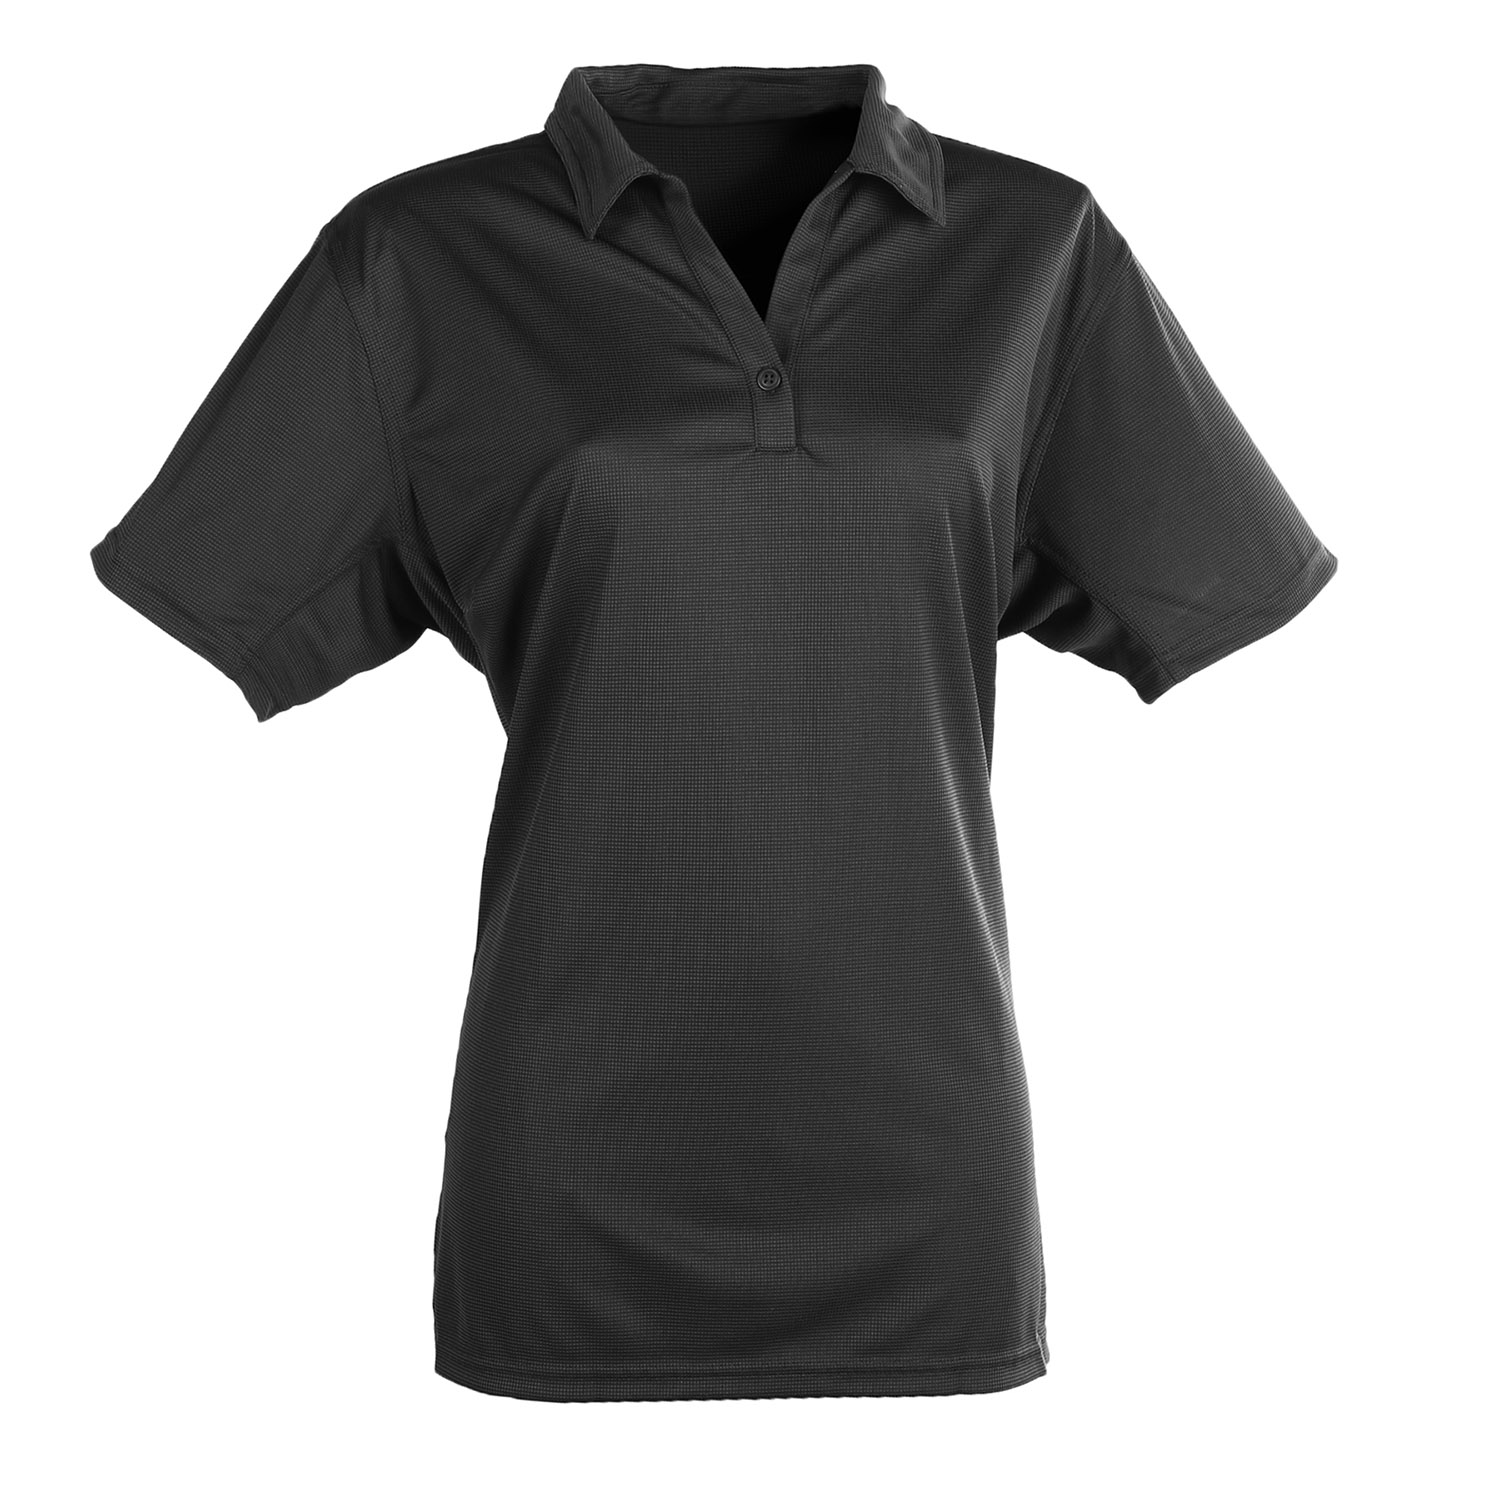 Red Kap Women's Short Sleeve Professional Polo